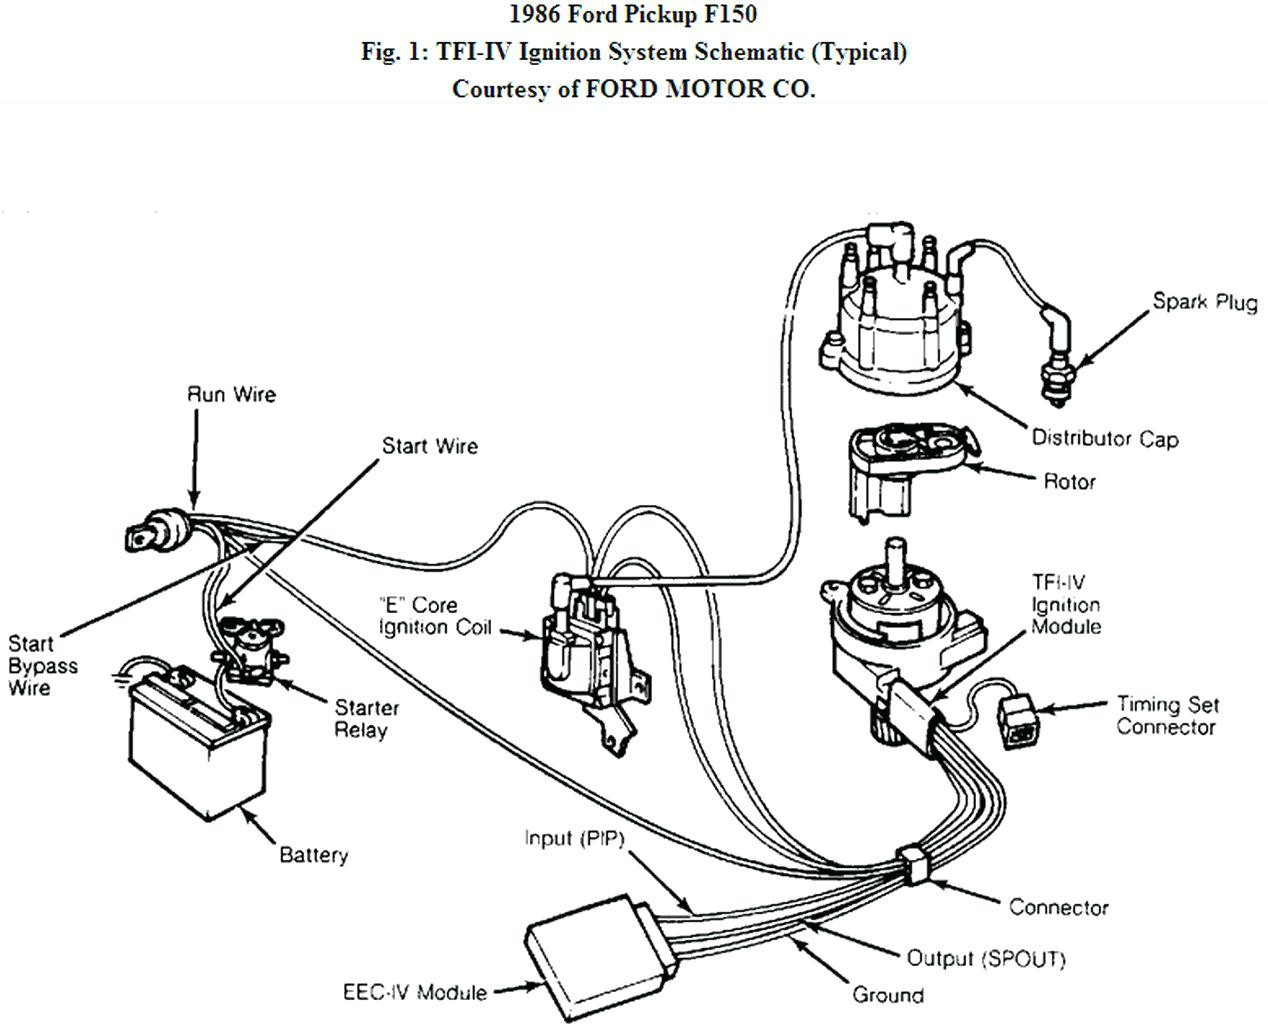 hight resolution of 1990 ford f150 starter solenoid wiring diagram inspirational ford f 150 transmission diagram 1986 ford f150 solenoid diagram